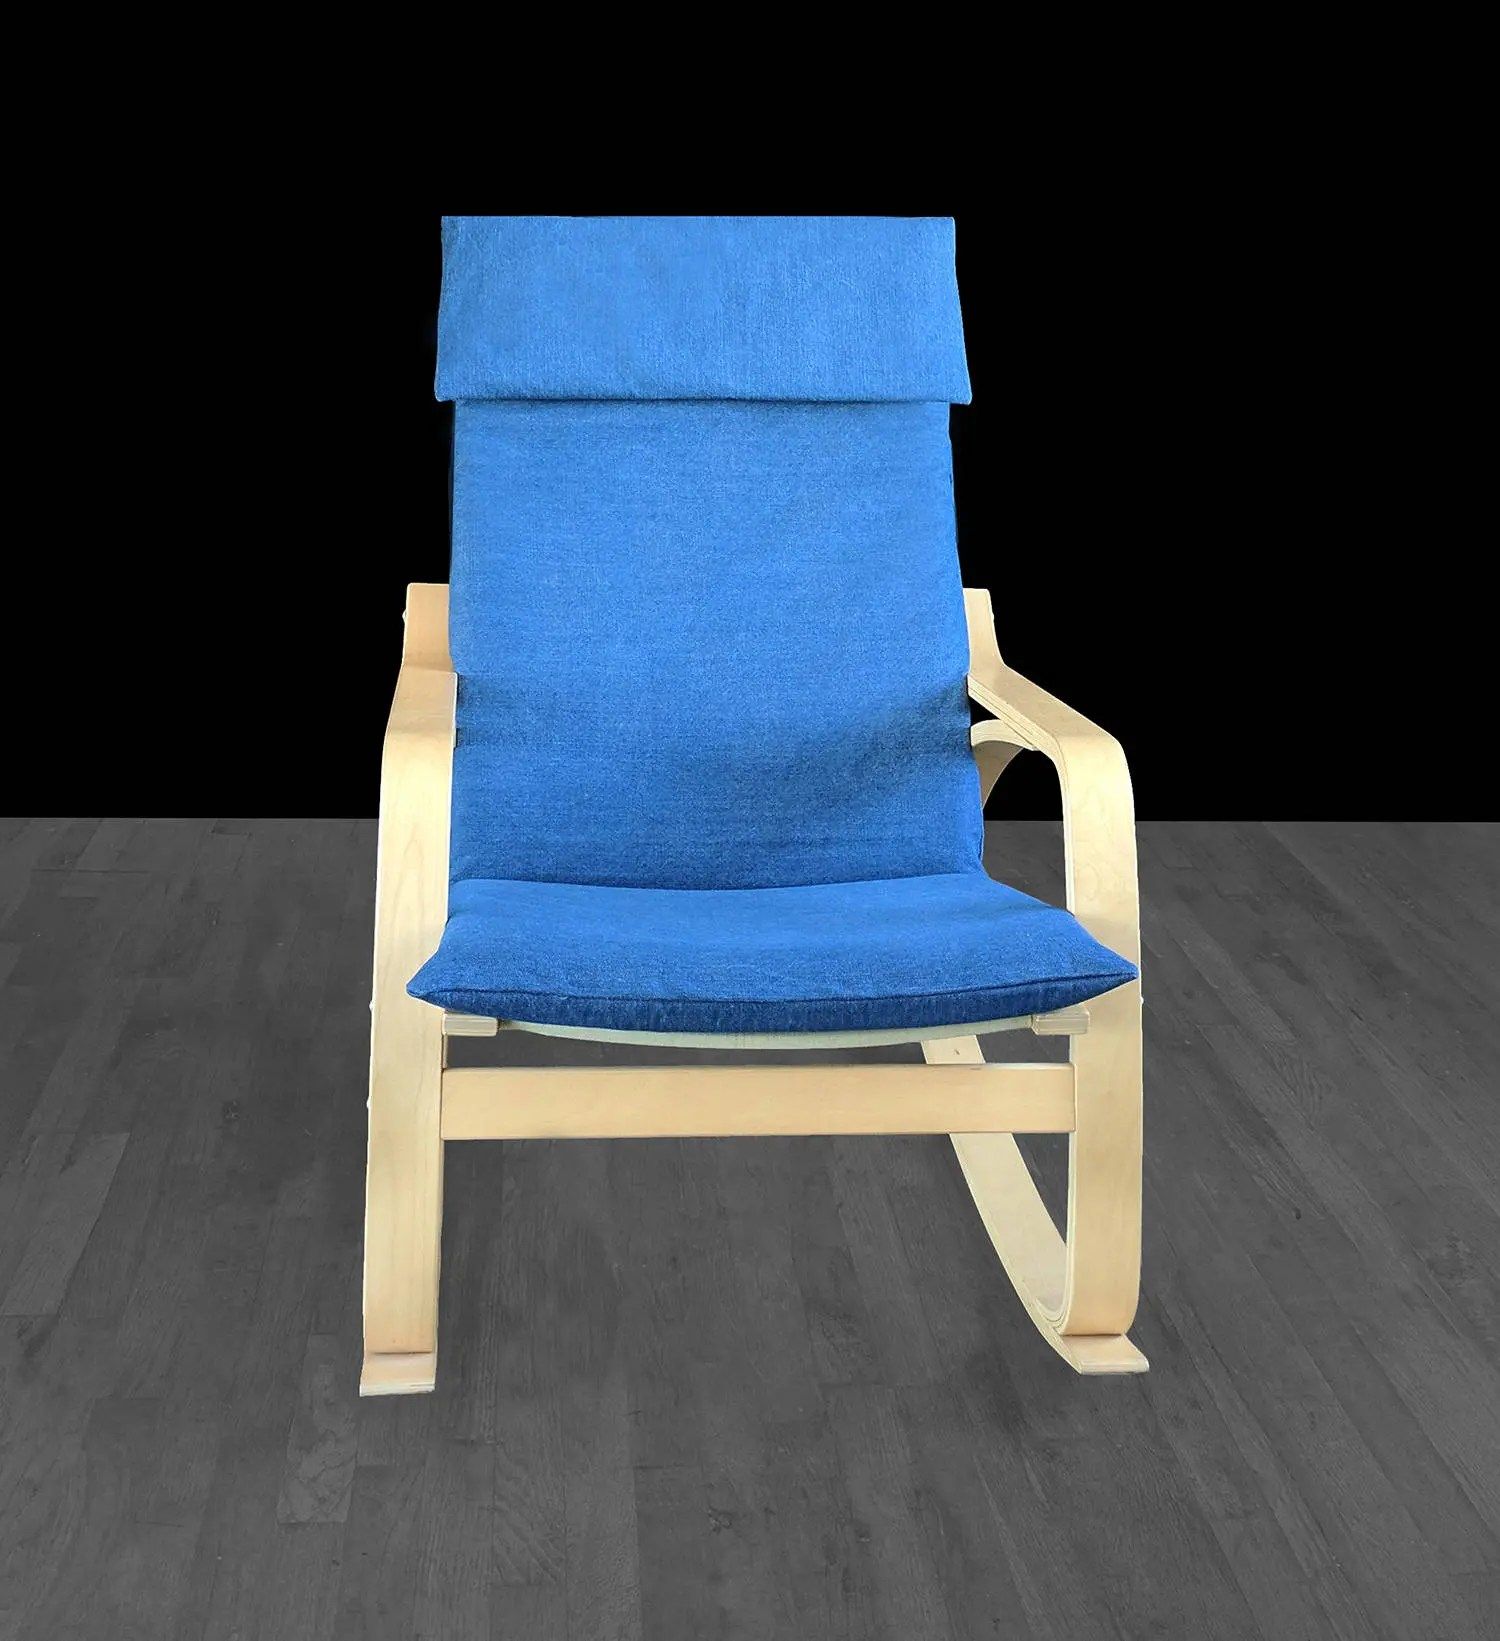 poang chair covers etsy gym twister seat dark denim blue ikea cover image 0